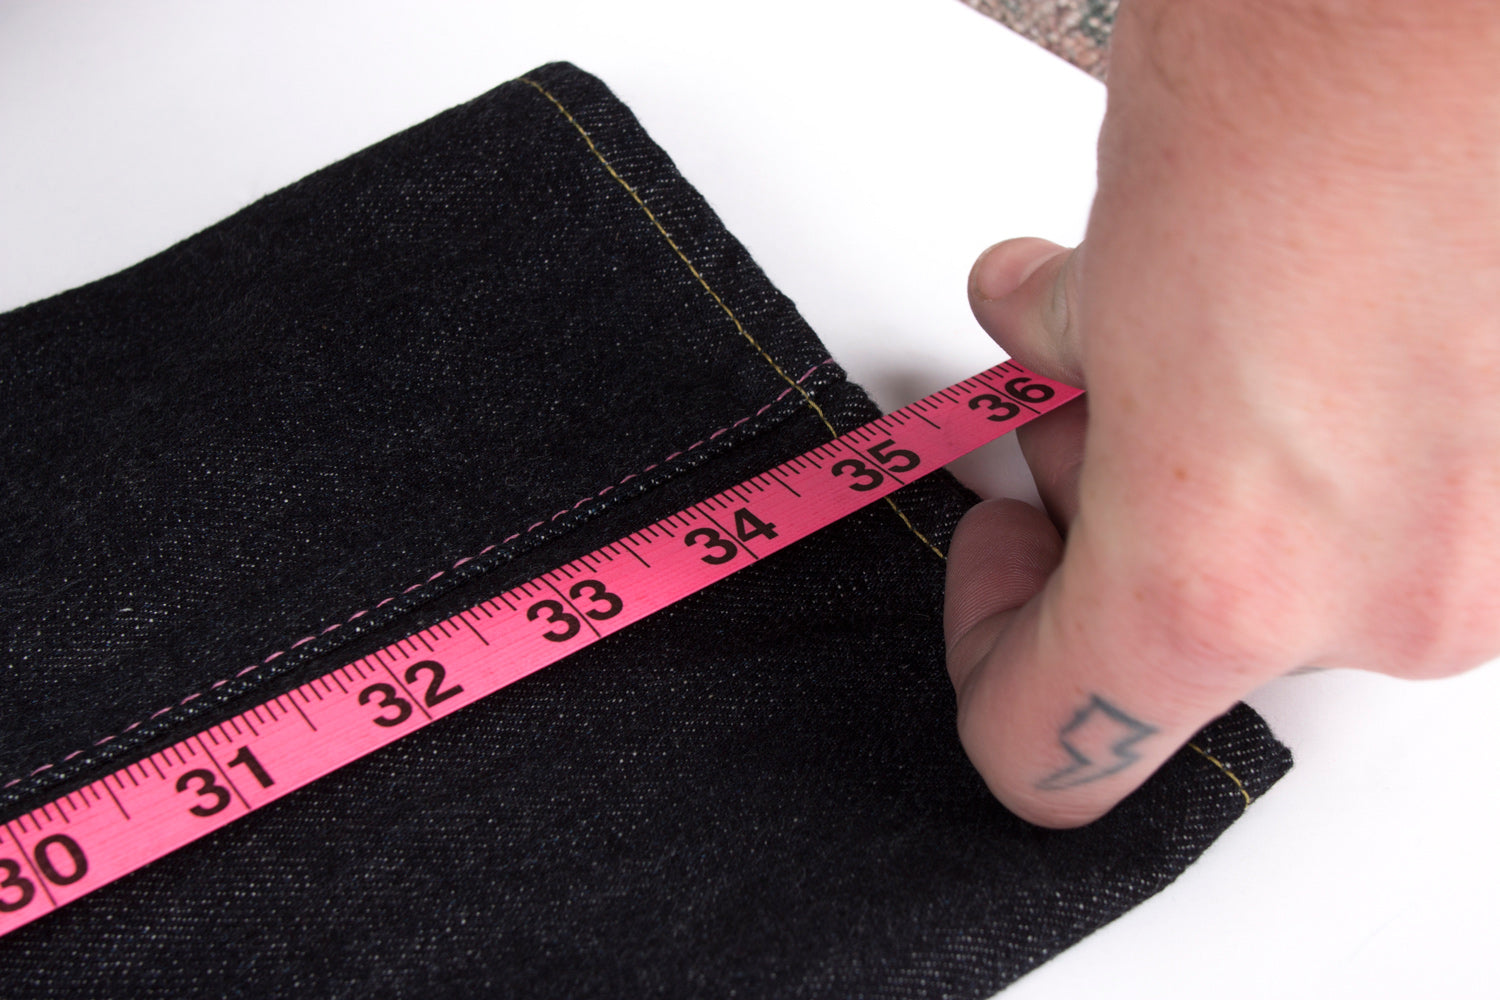 inseam-measurement-step-2